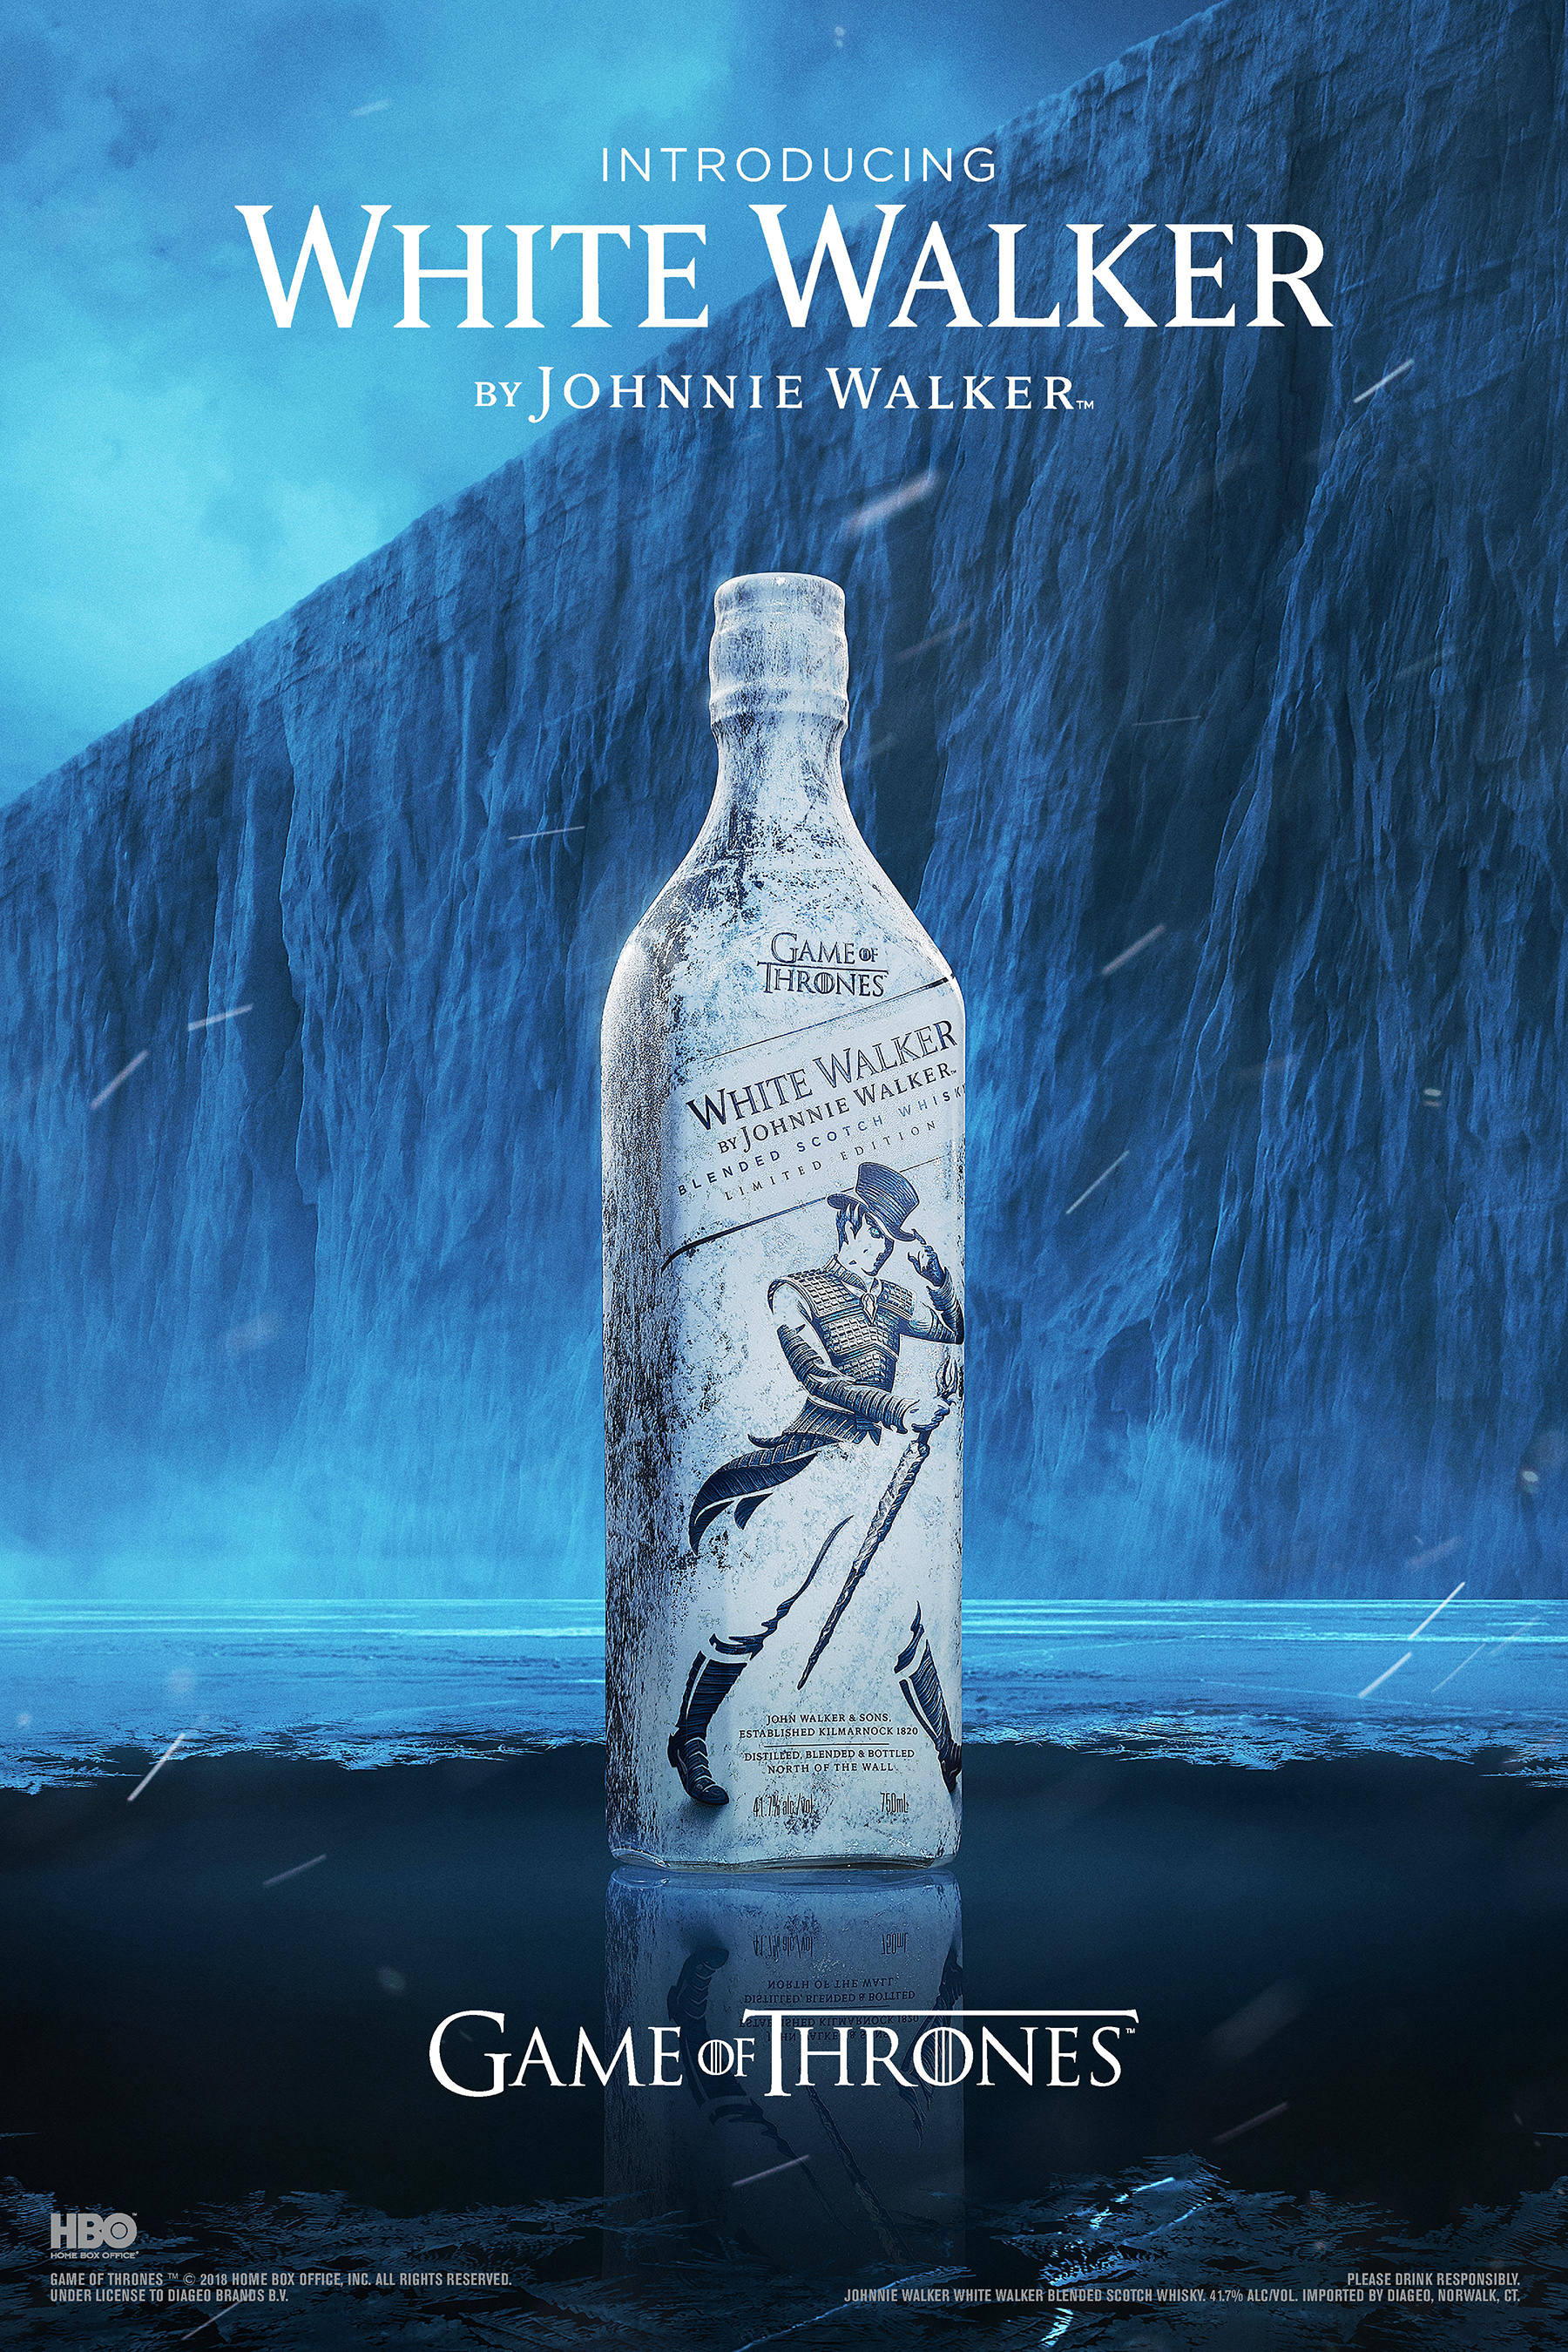 White Walker by Johnnie Walker is a limited-edition Scotch whisky blend inspired by the chill-inducing White Walkers characters from Game of Thrones.